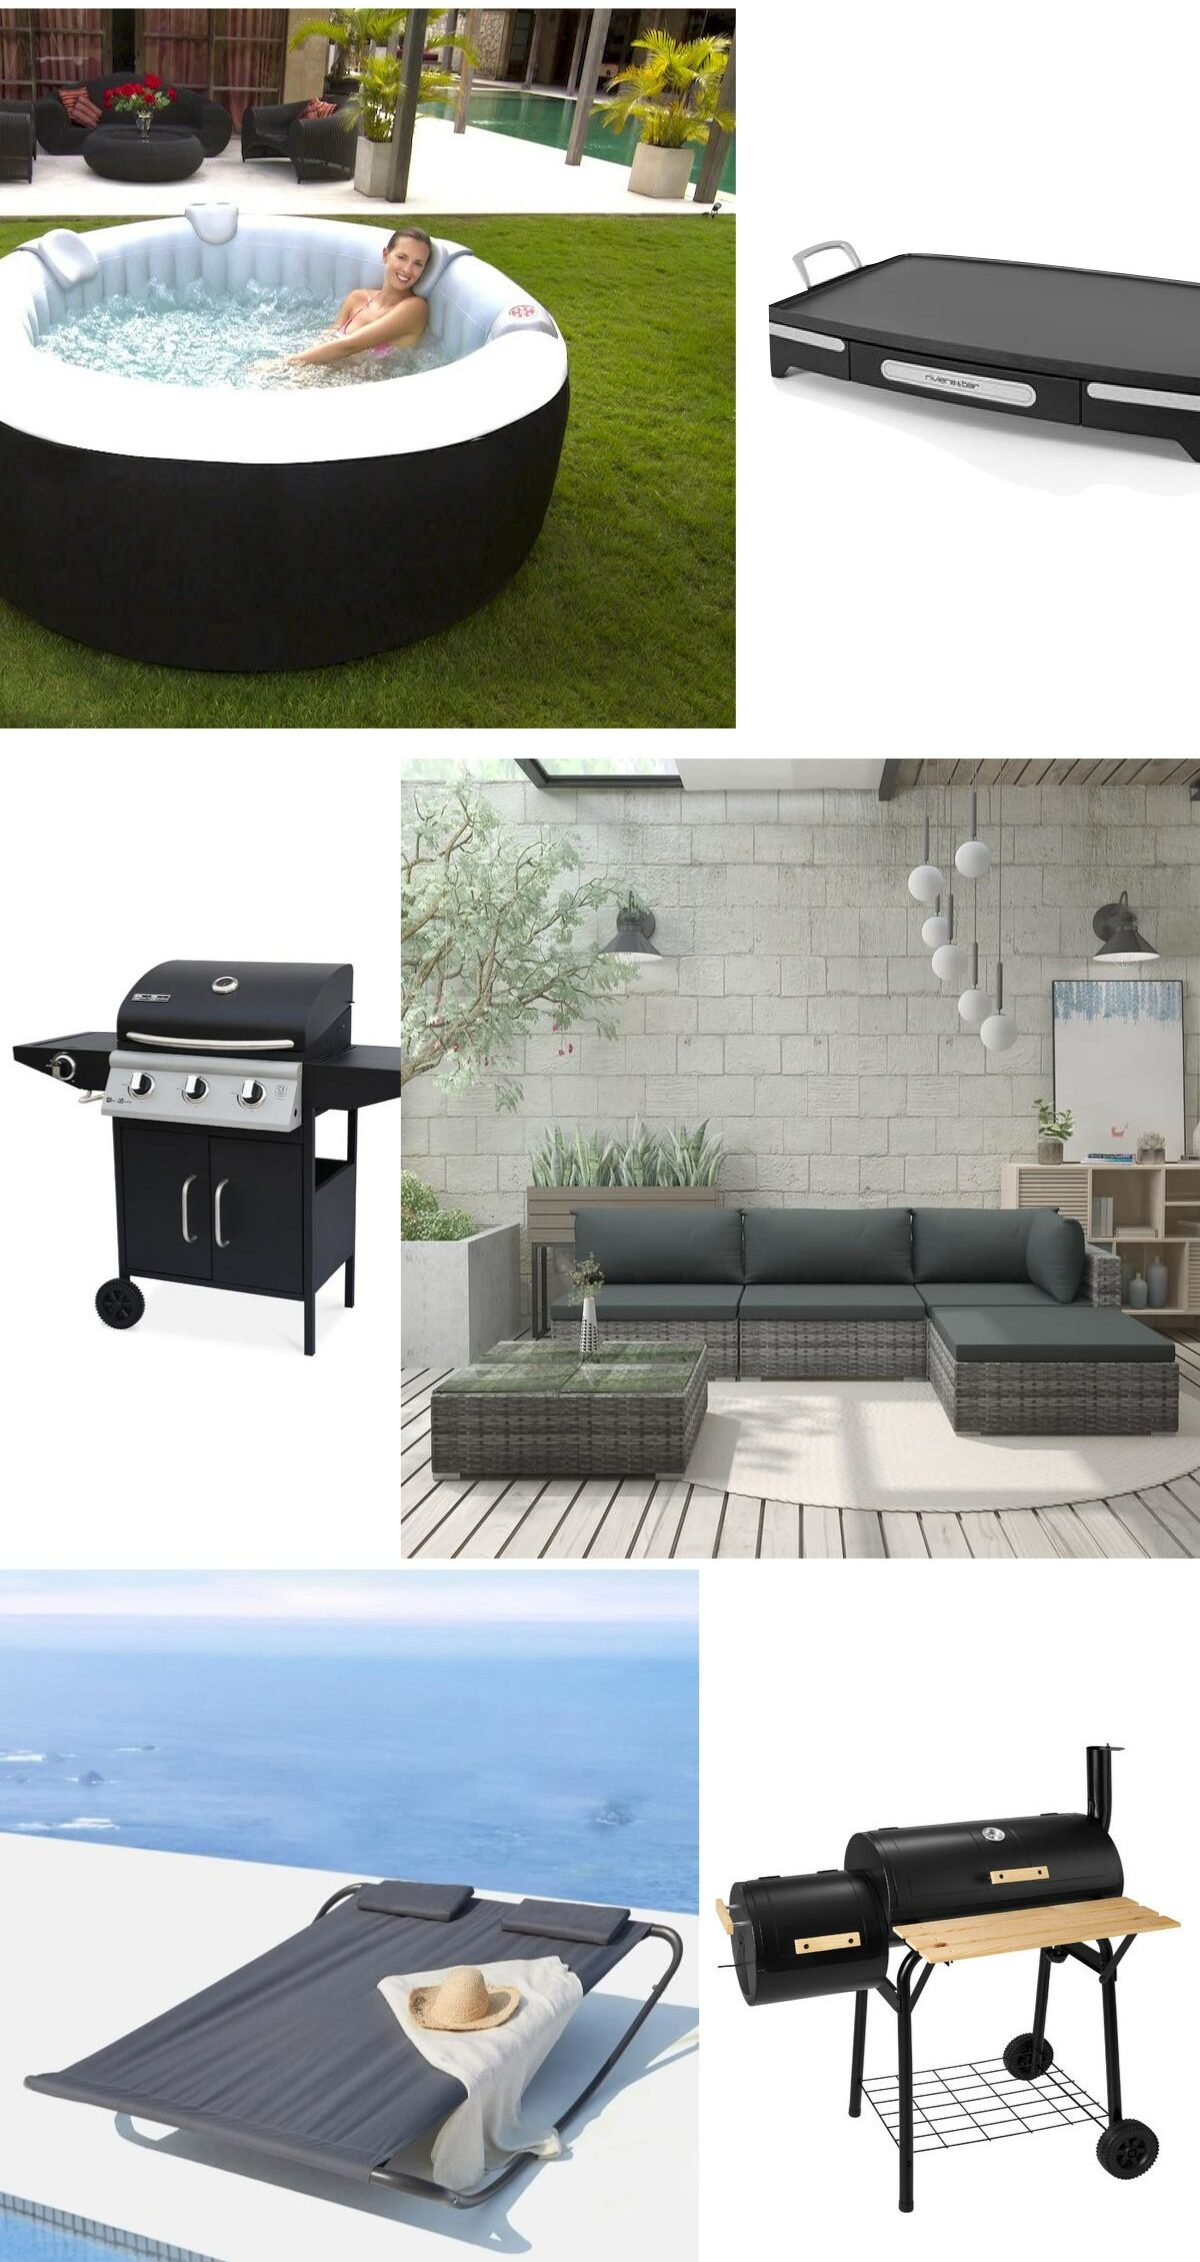 spa gonflable rond pas cher aménager jardin relaxation meuble barbecue